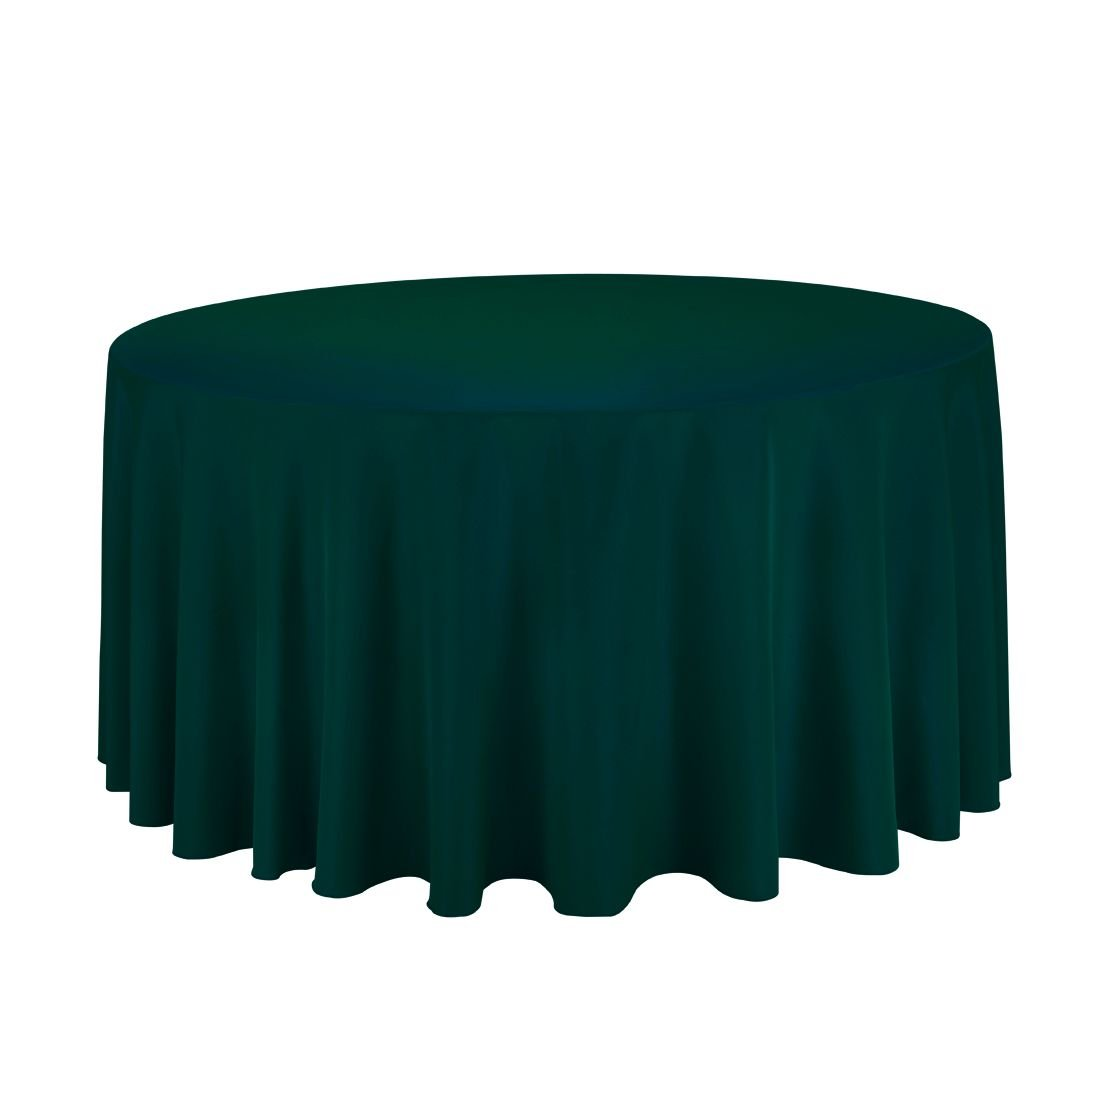 Gee Di Moda Tablecloth - 120 Inch Round Tablecloths for Circular Table Cover in Black Washable Polyester - Great for Buffet Table, Parties, Holiday Dinner & More GDMPRD120B